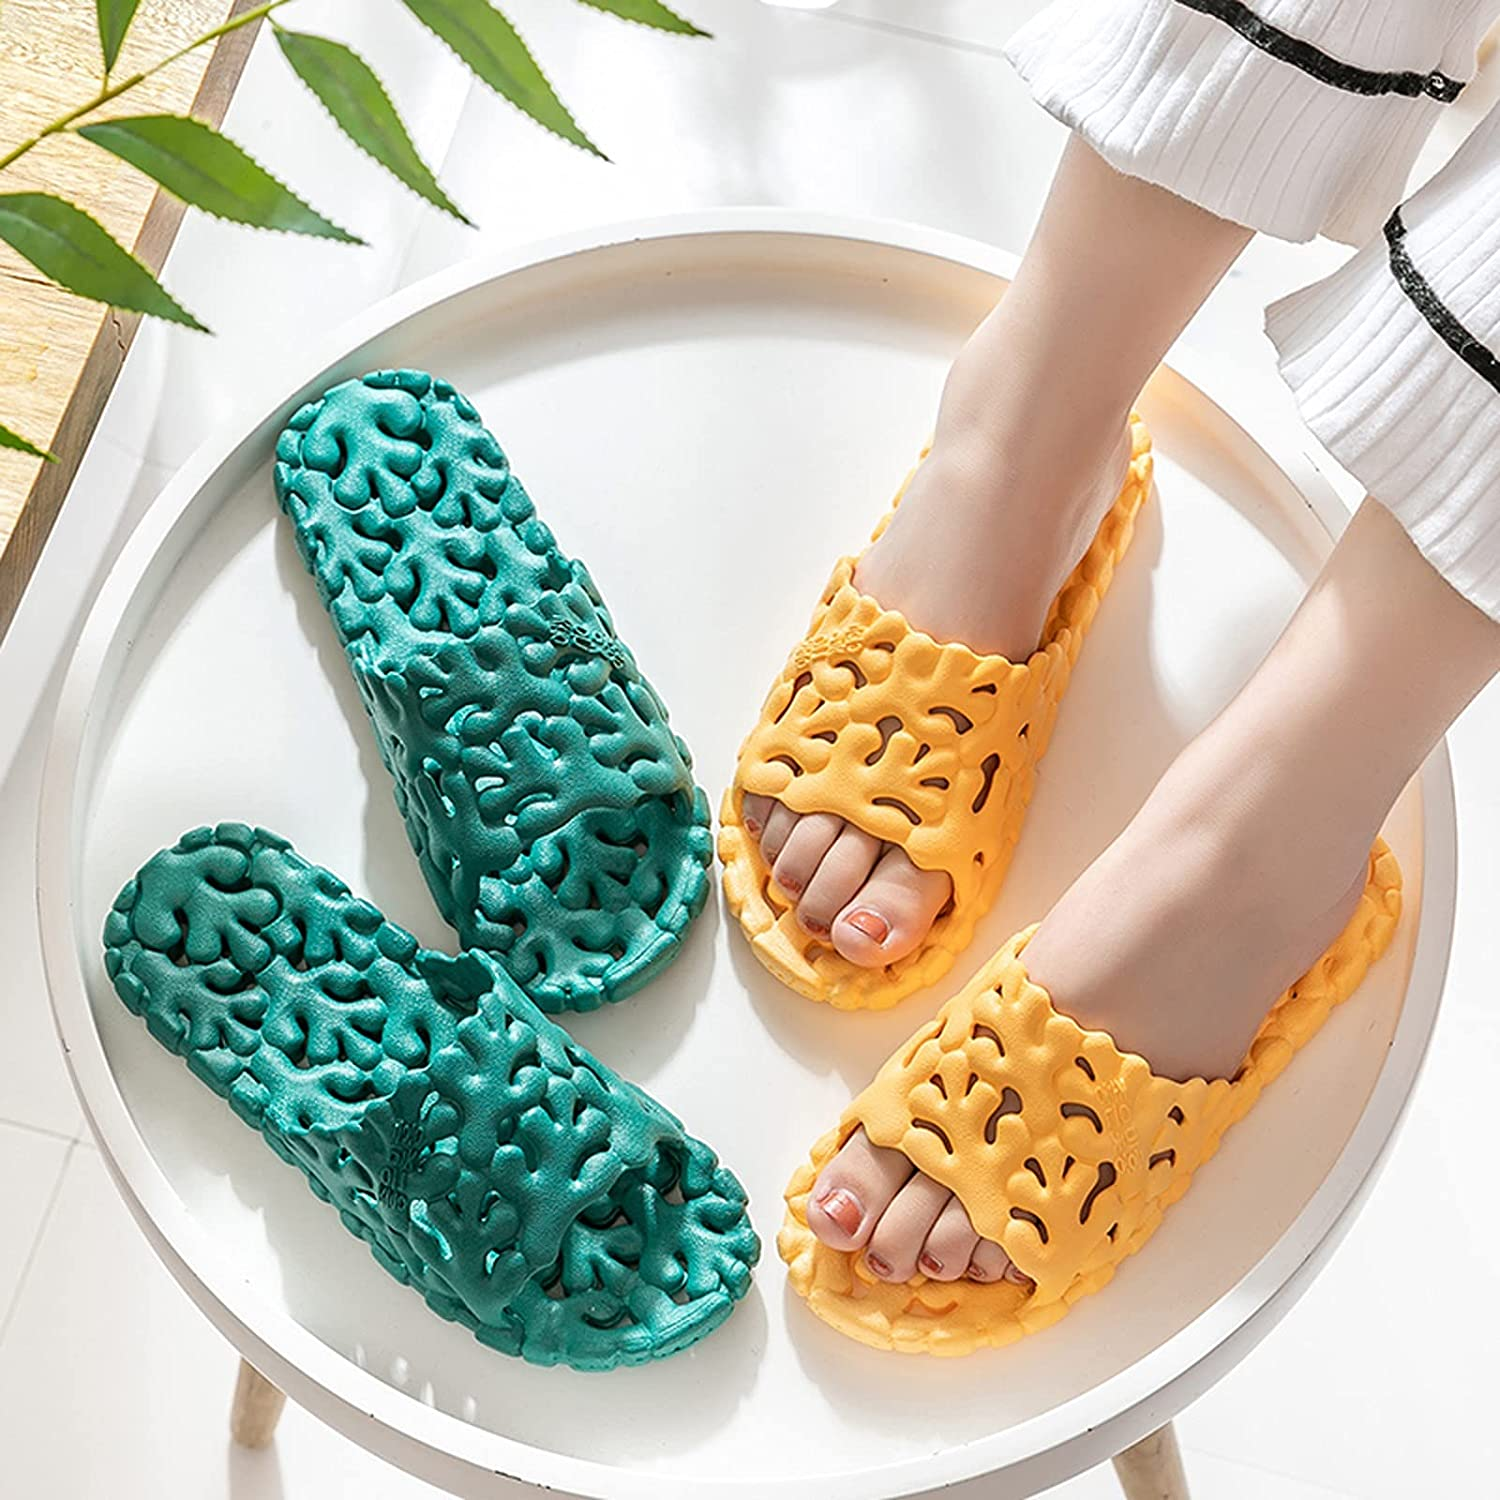 YAYA2021-SHOP Flip Flop Indoor Outdoor Home Beach Non Slip Quick Drying Sandals Slippers with Drainage Holes, Soft Sole Open Toe House Gym Slippers for Women Bathroom Shower Slippers Slippers